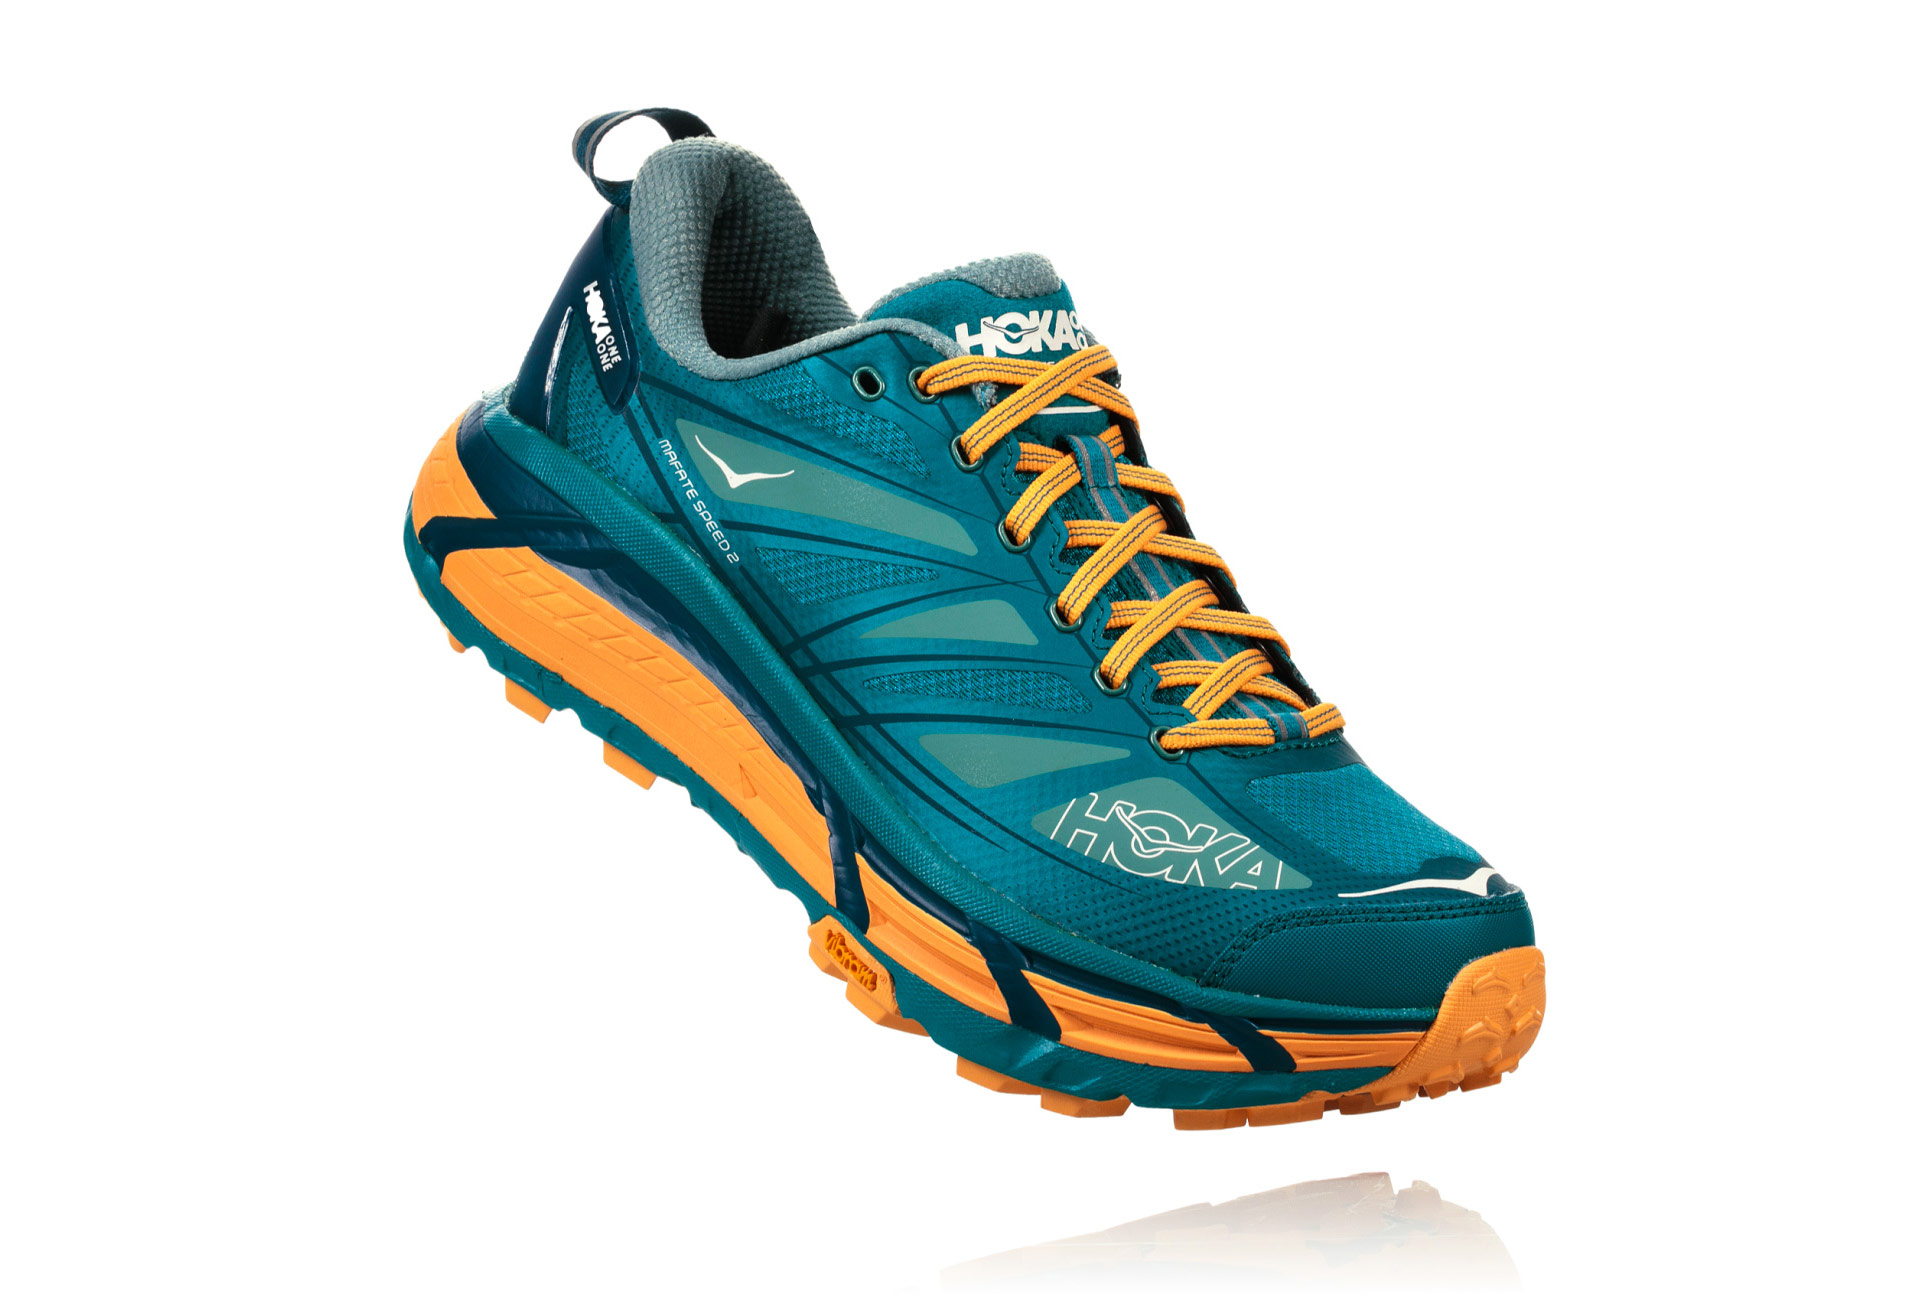 Bleu 2 Mafate P08nwok Speed Orange Hoka BrWdoQeCx